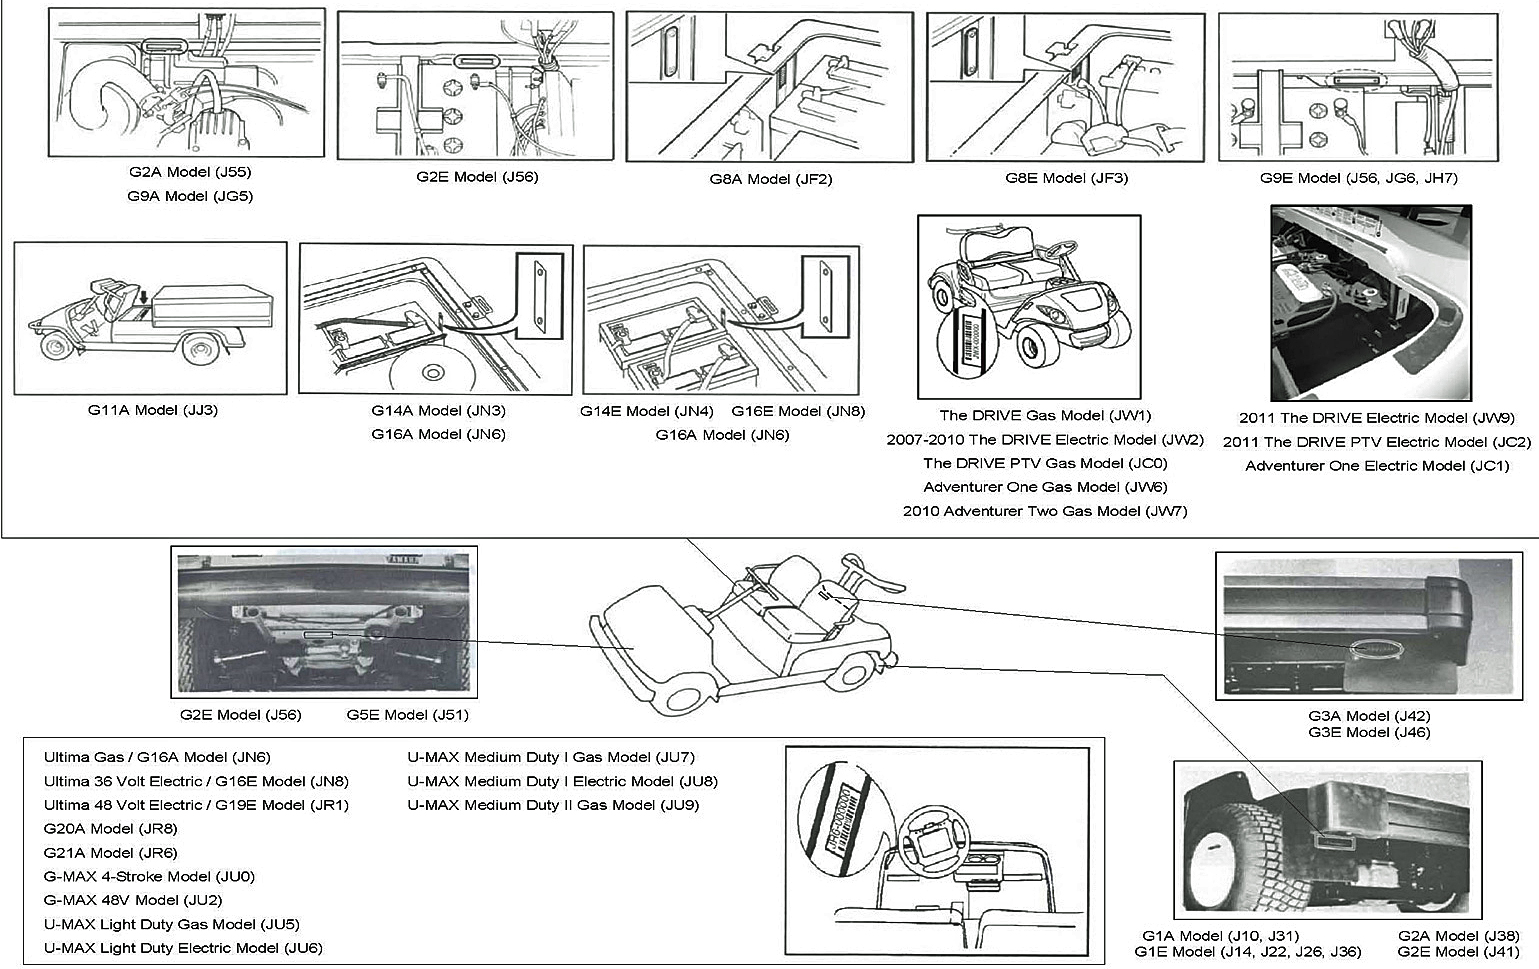 yamaha wiring diagram g9e electric golf cart wiring diagram for rh prestonfarmmotors co